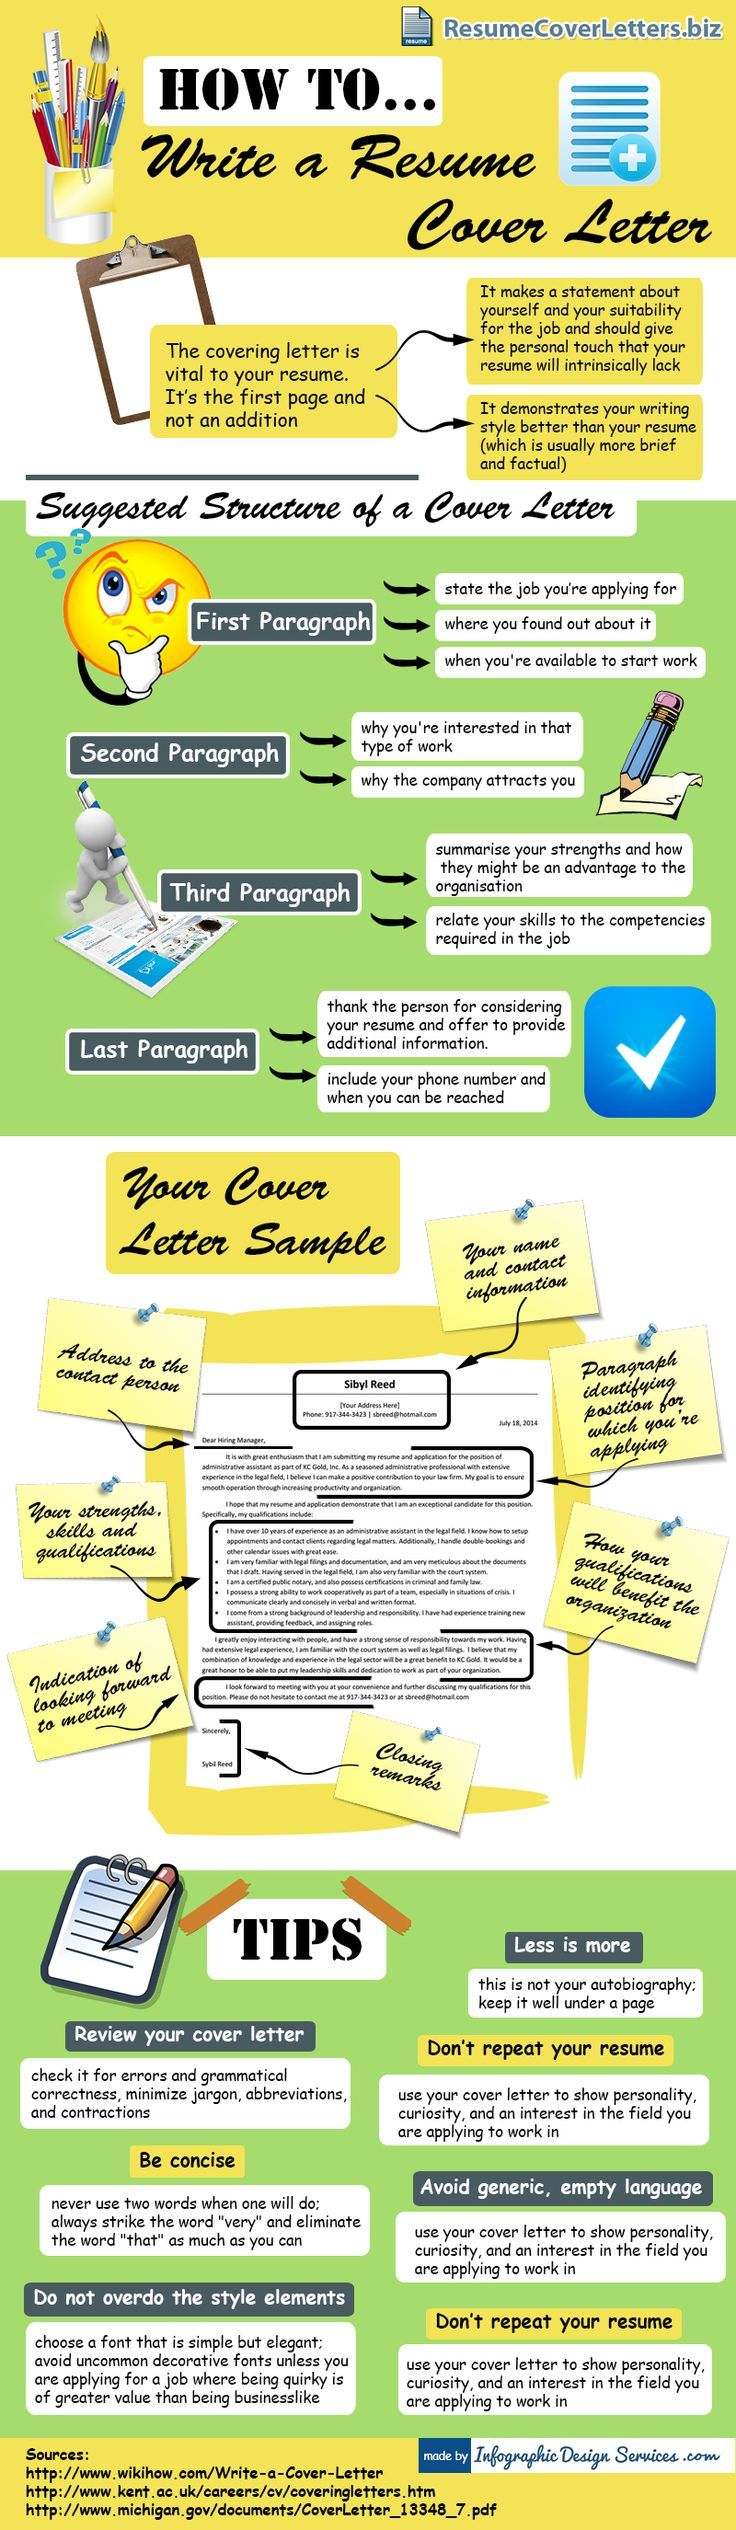 Writing A Cover Letter Cool Resume Cover Letter Writing Tips  Pinterest  Resume Cover Letters .